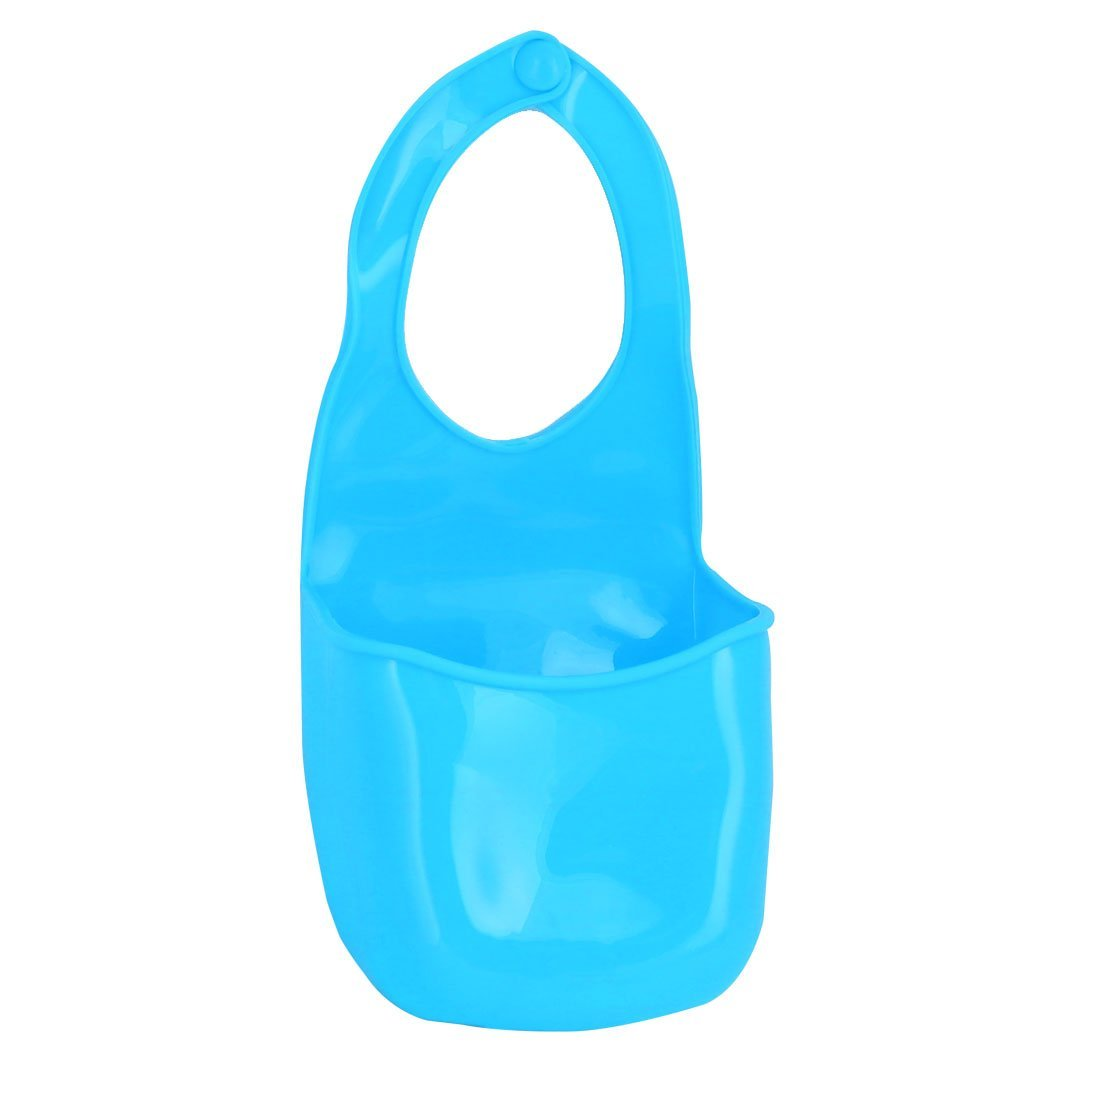 uxcell Silicone 3 Holes Design Hanging Storage Bag Case Organizer Blue